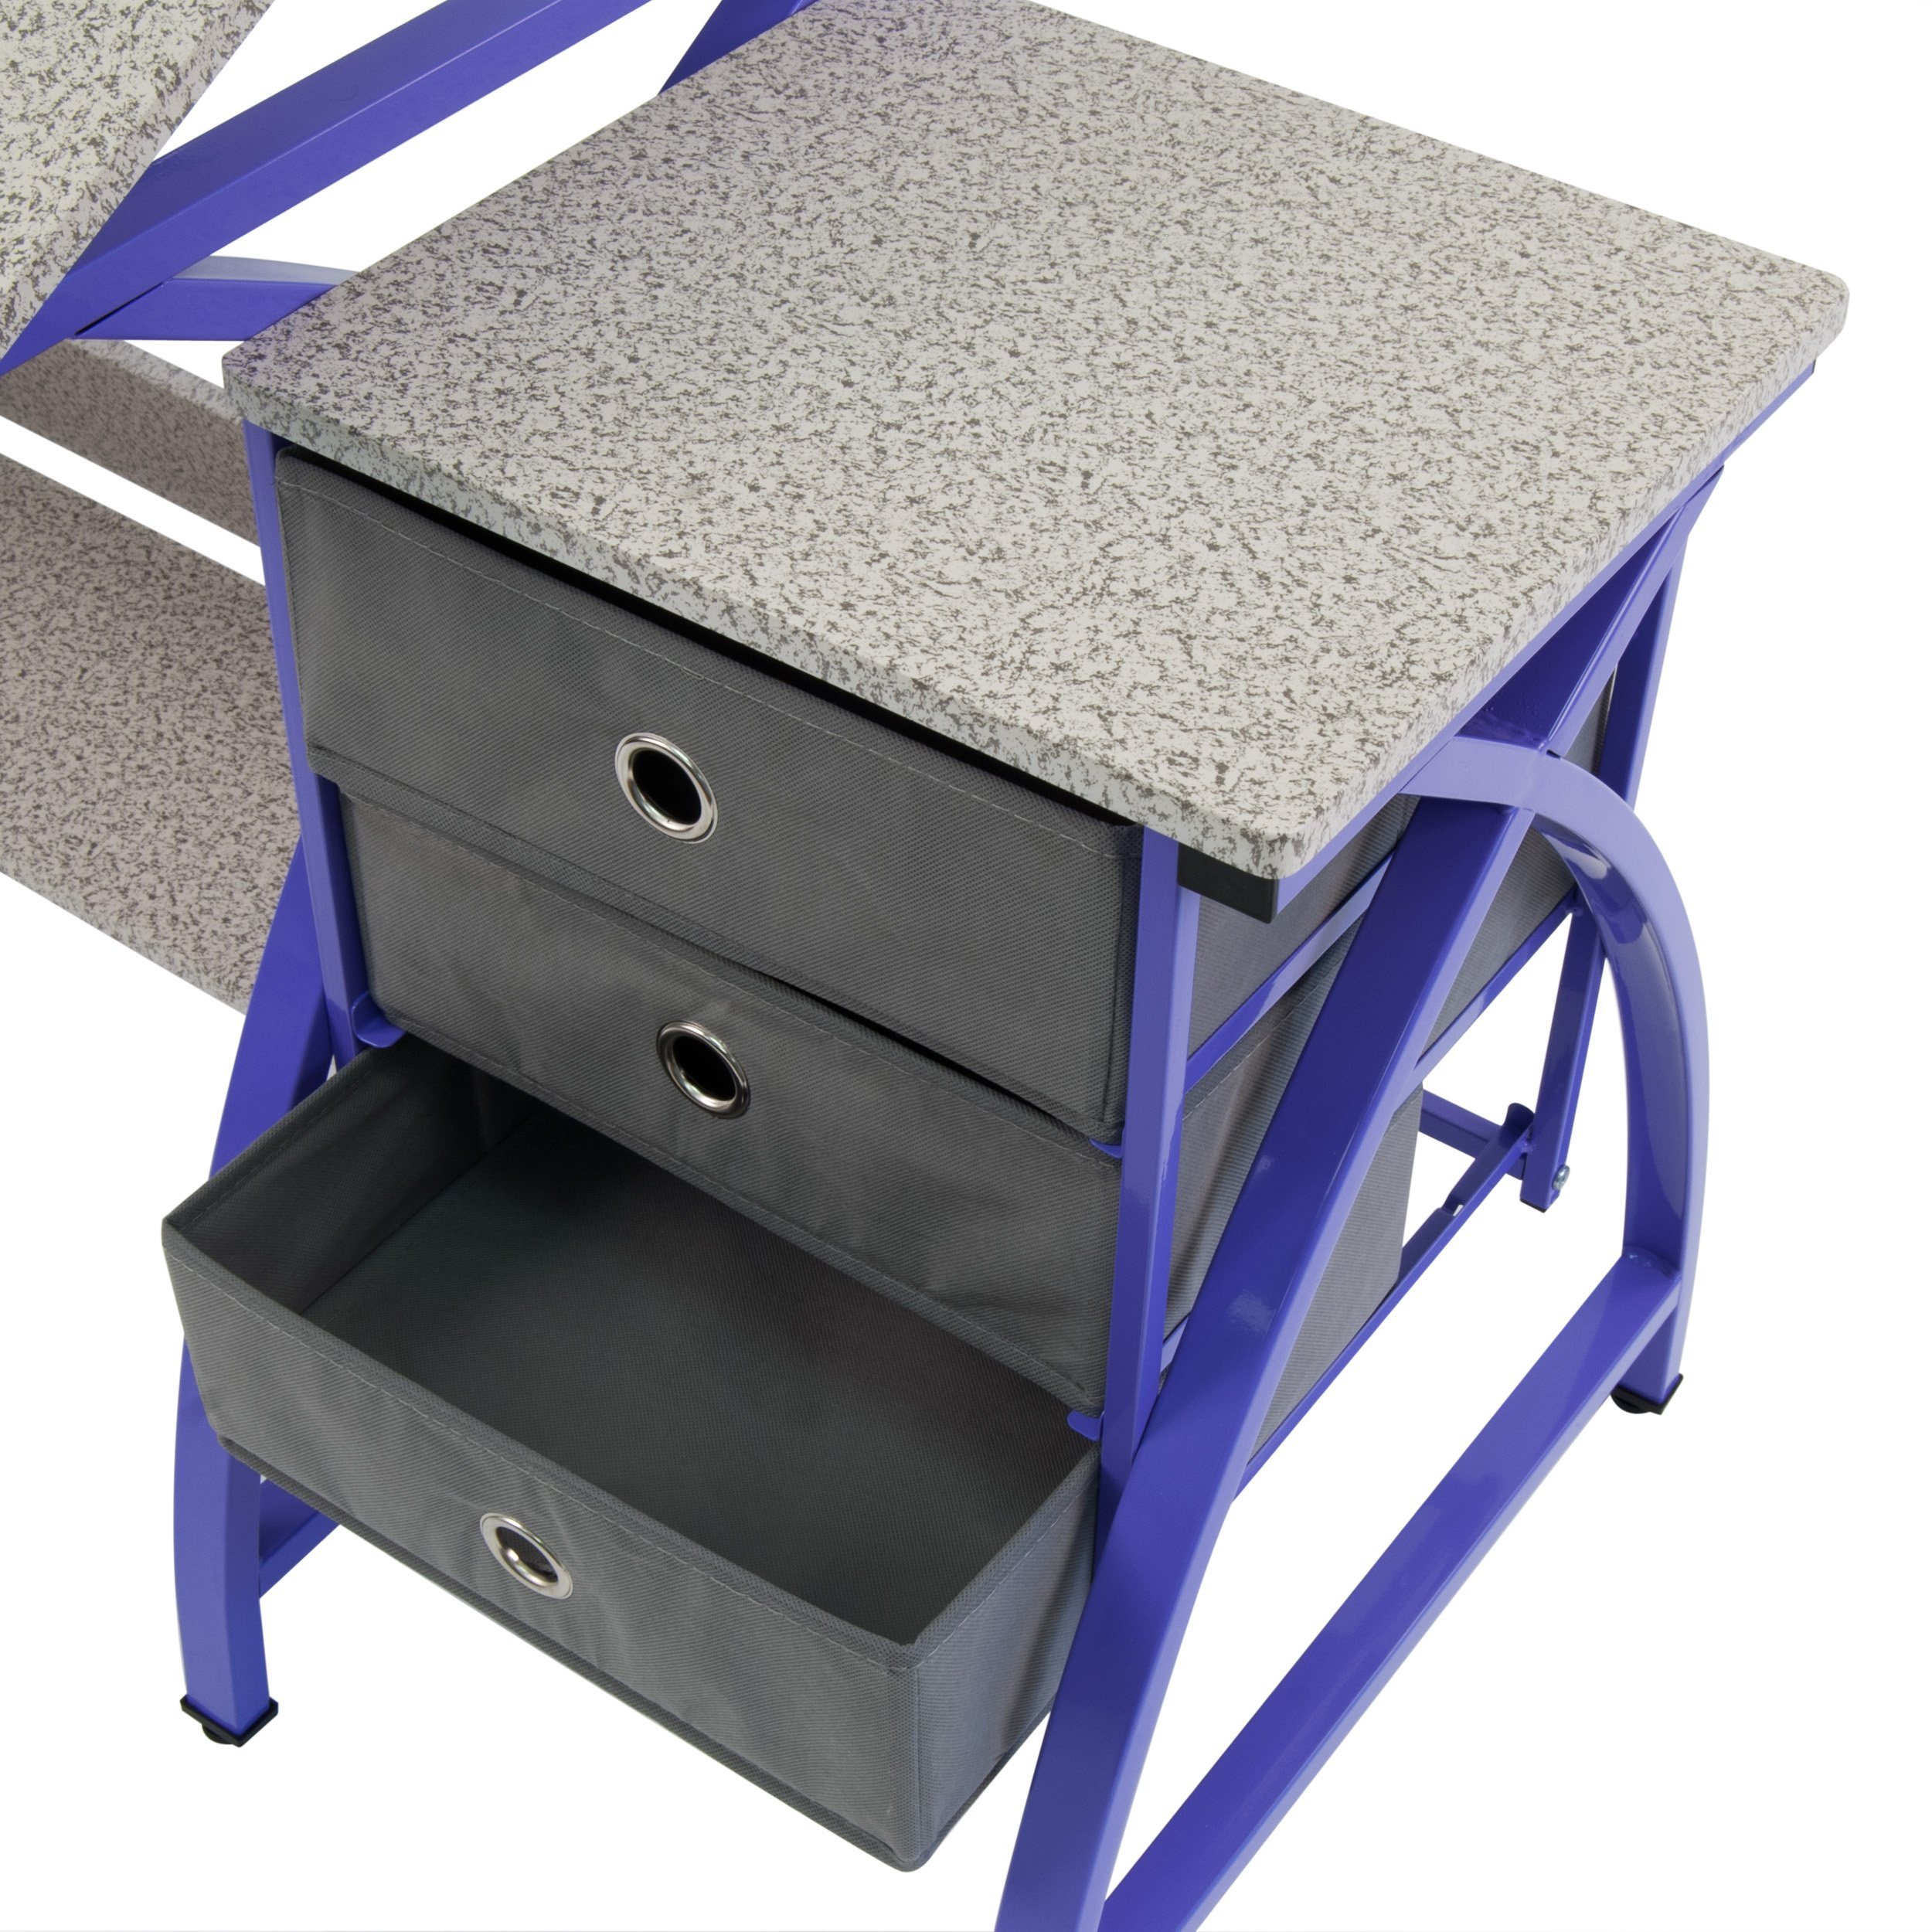 Comet Center with Stool in Purple / Spatter Gray by SD STUDIO DESIGNS (Image #6)